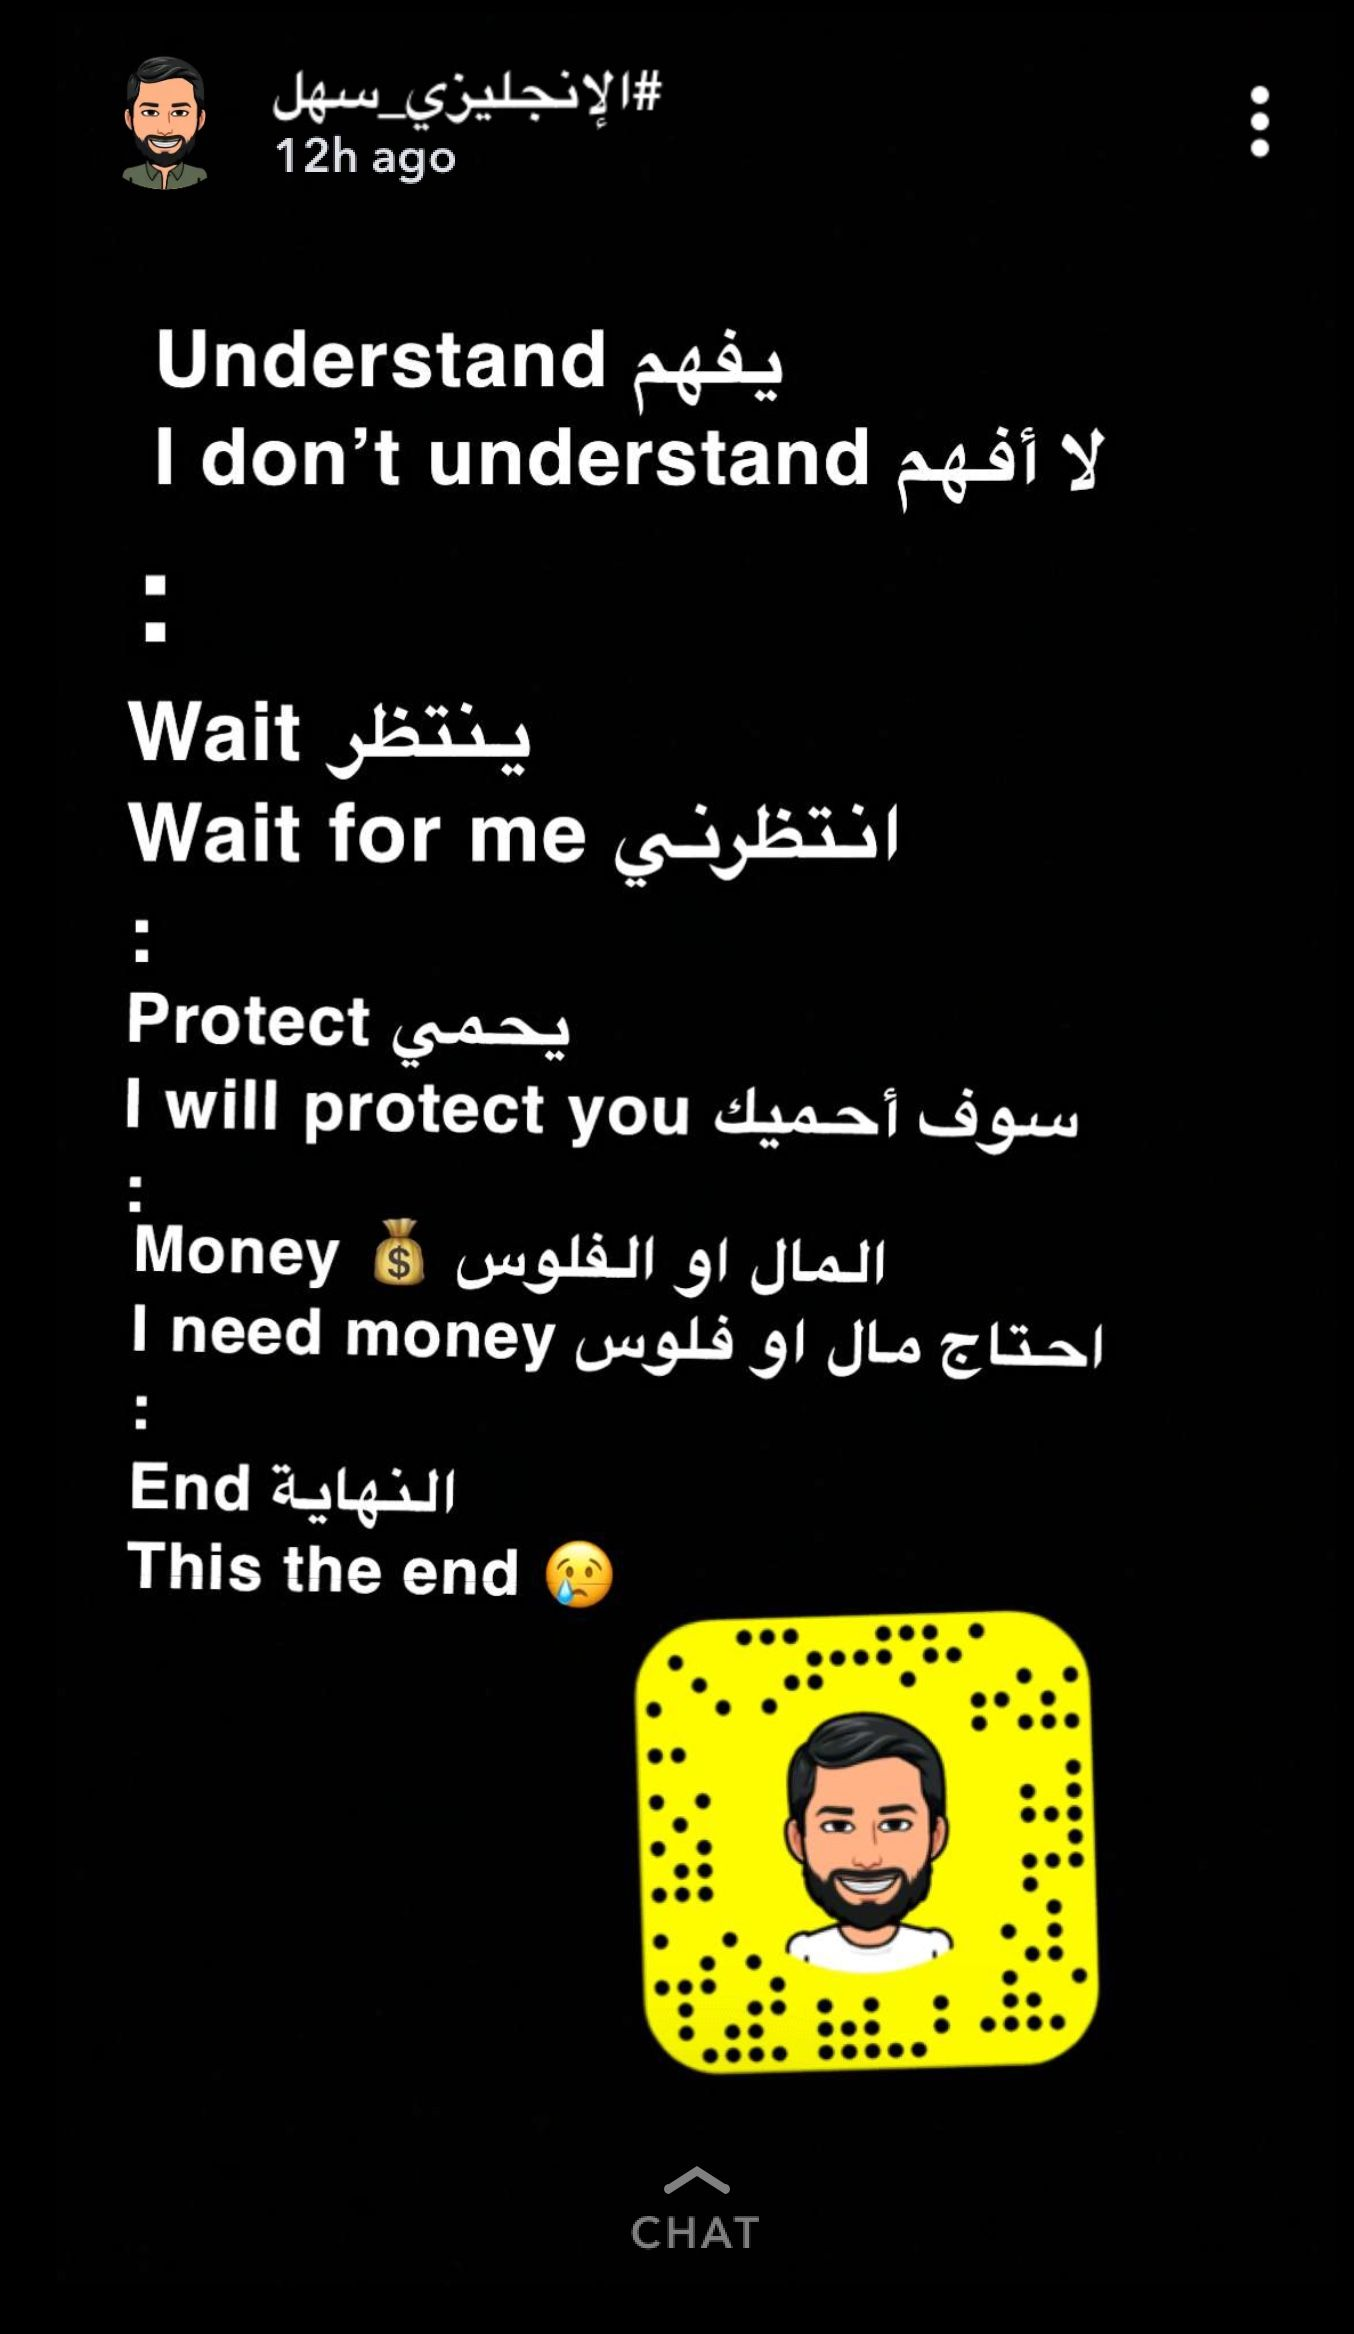 Pin By Lora Coral On English Activity I Will Protect You English Activities Need Money